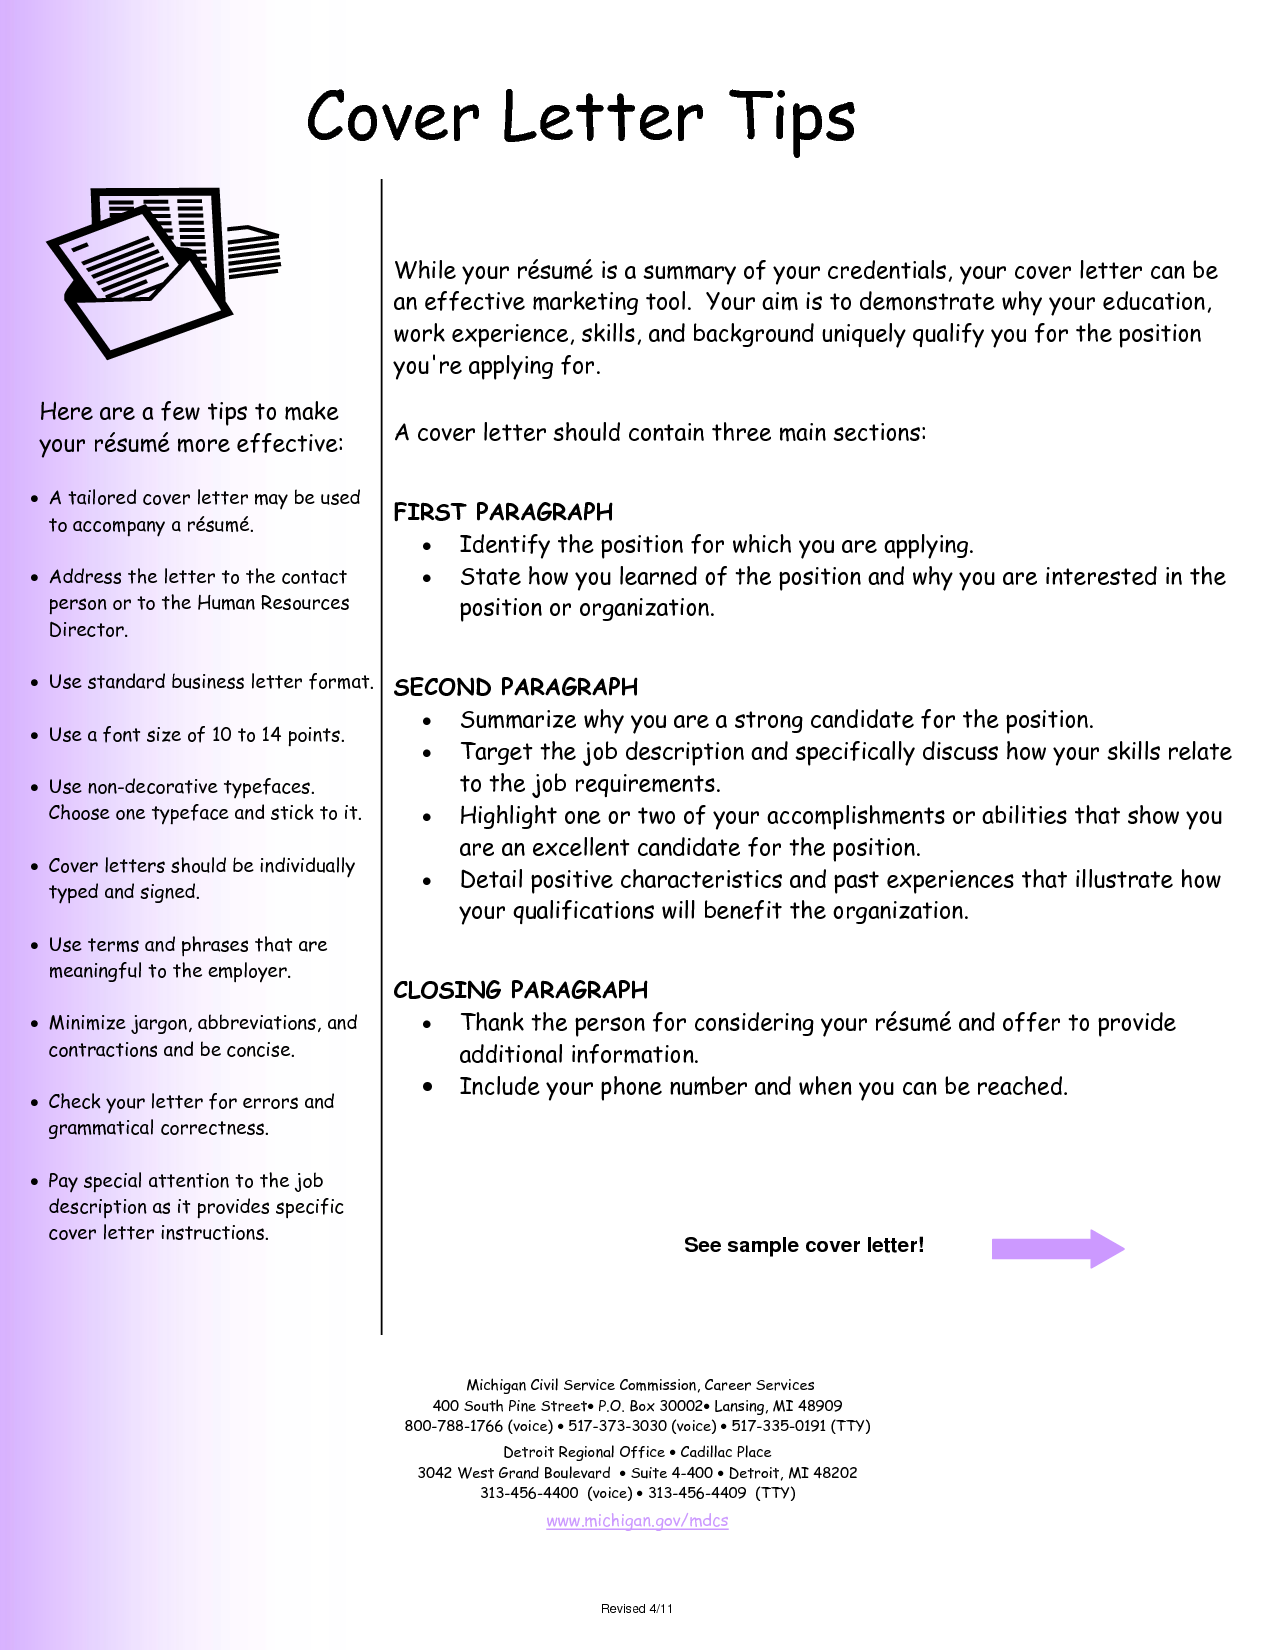 sample resume cover letter 2 crafting succint and well crafted